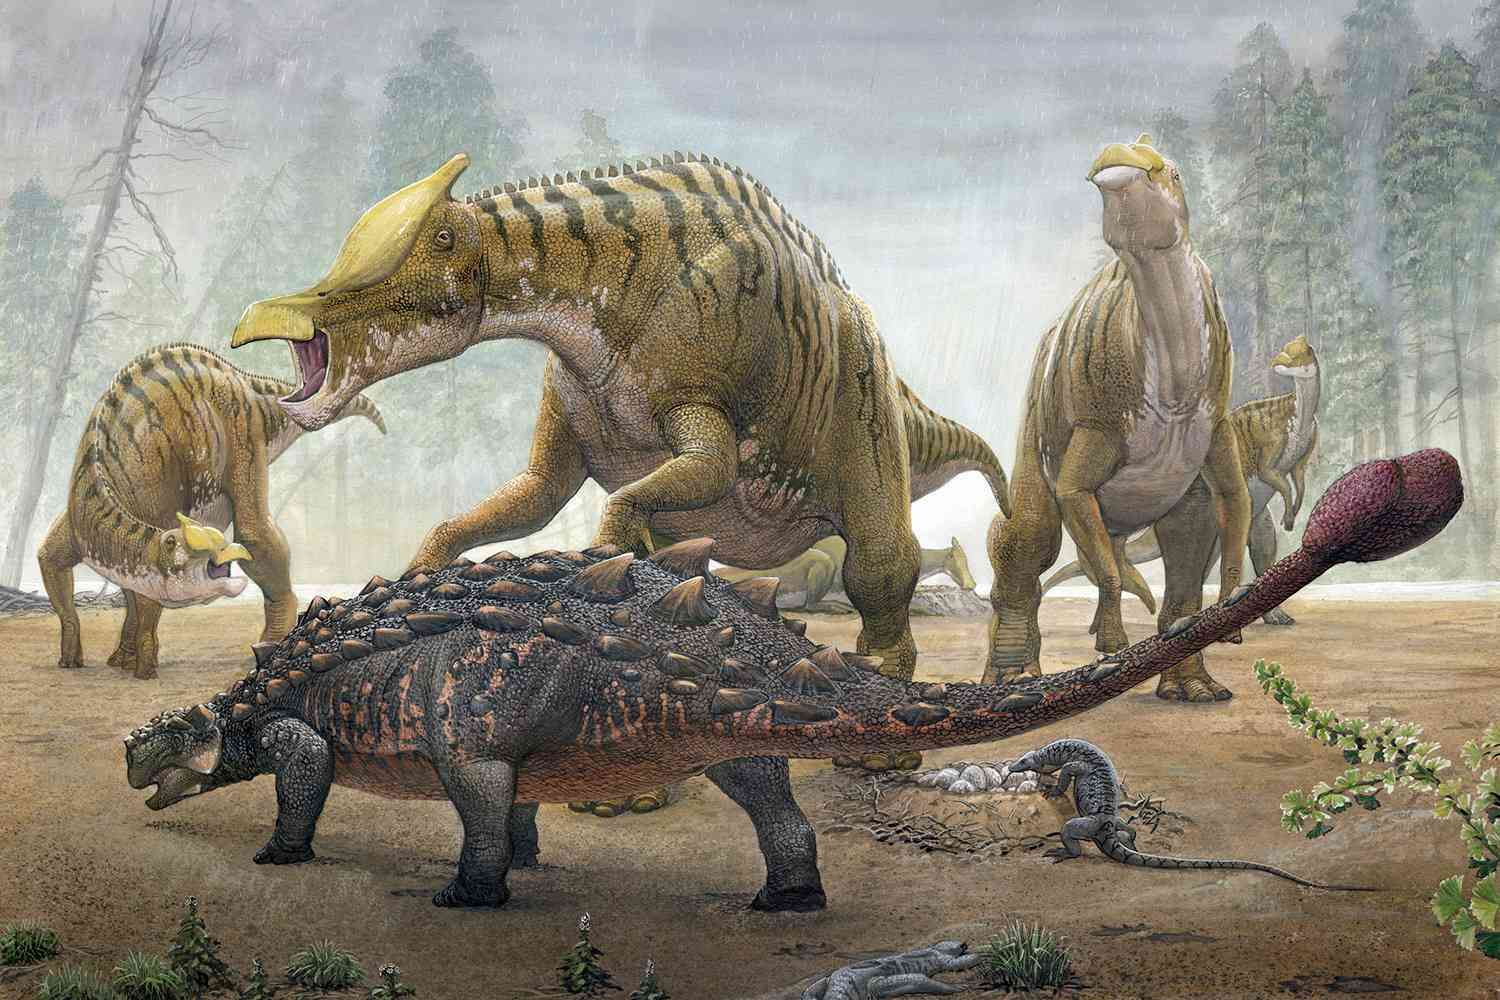 An illustration of a herd of Saurolophus with other, smaller dinosaurs